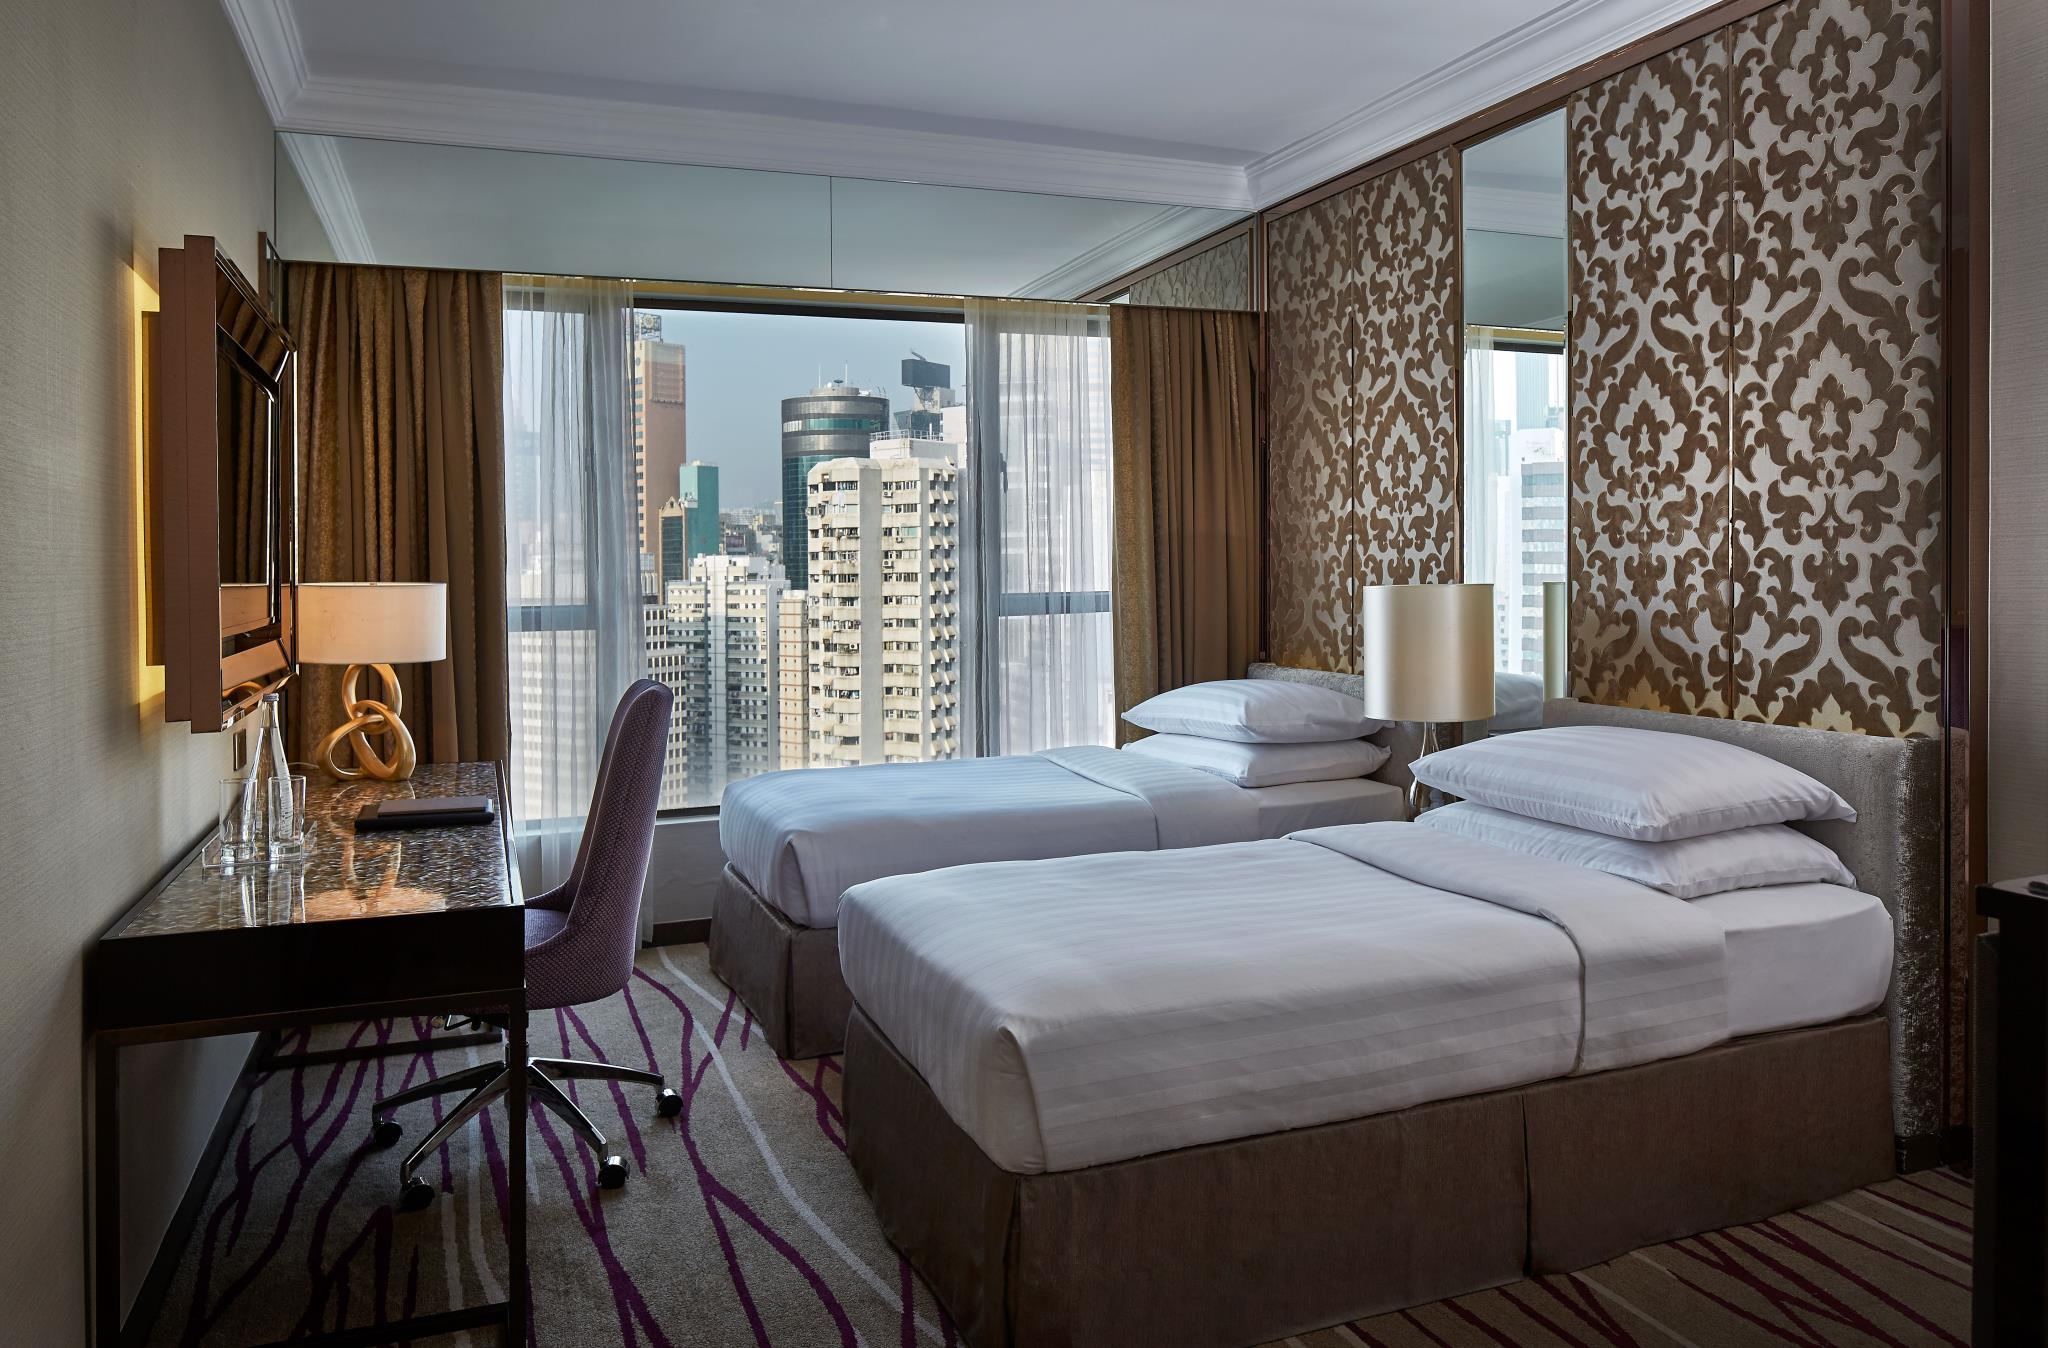 Dorsett Rum Grand Deluxe med stadsutsikt över Causeway Bay (Dorsett Grand Deluxe Causeway Bay City View Room)